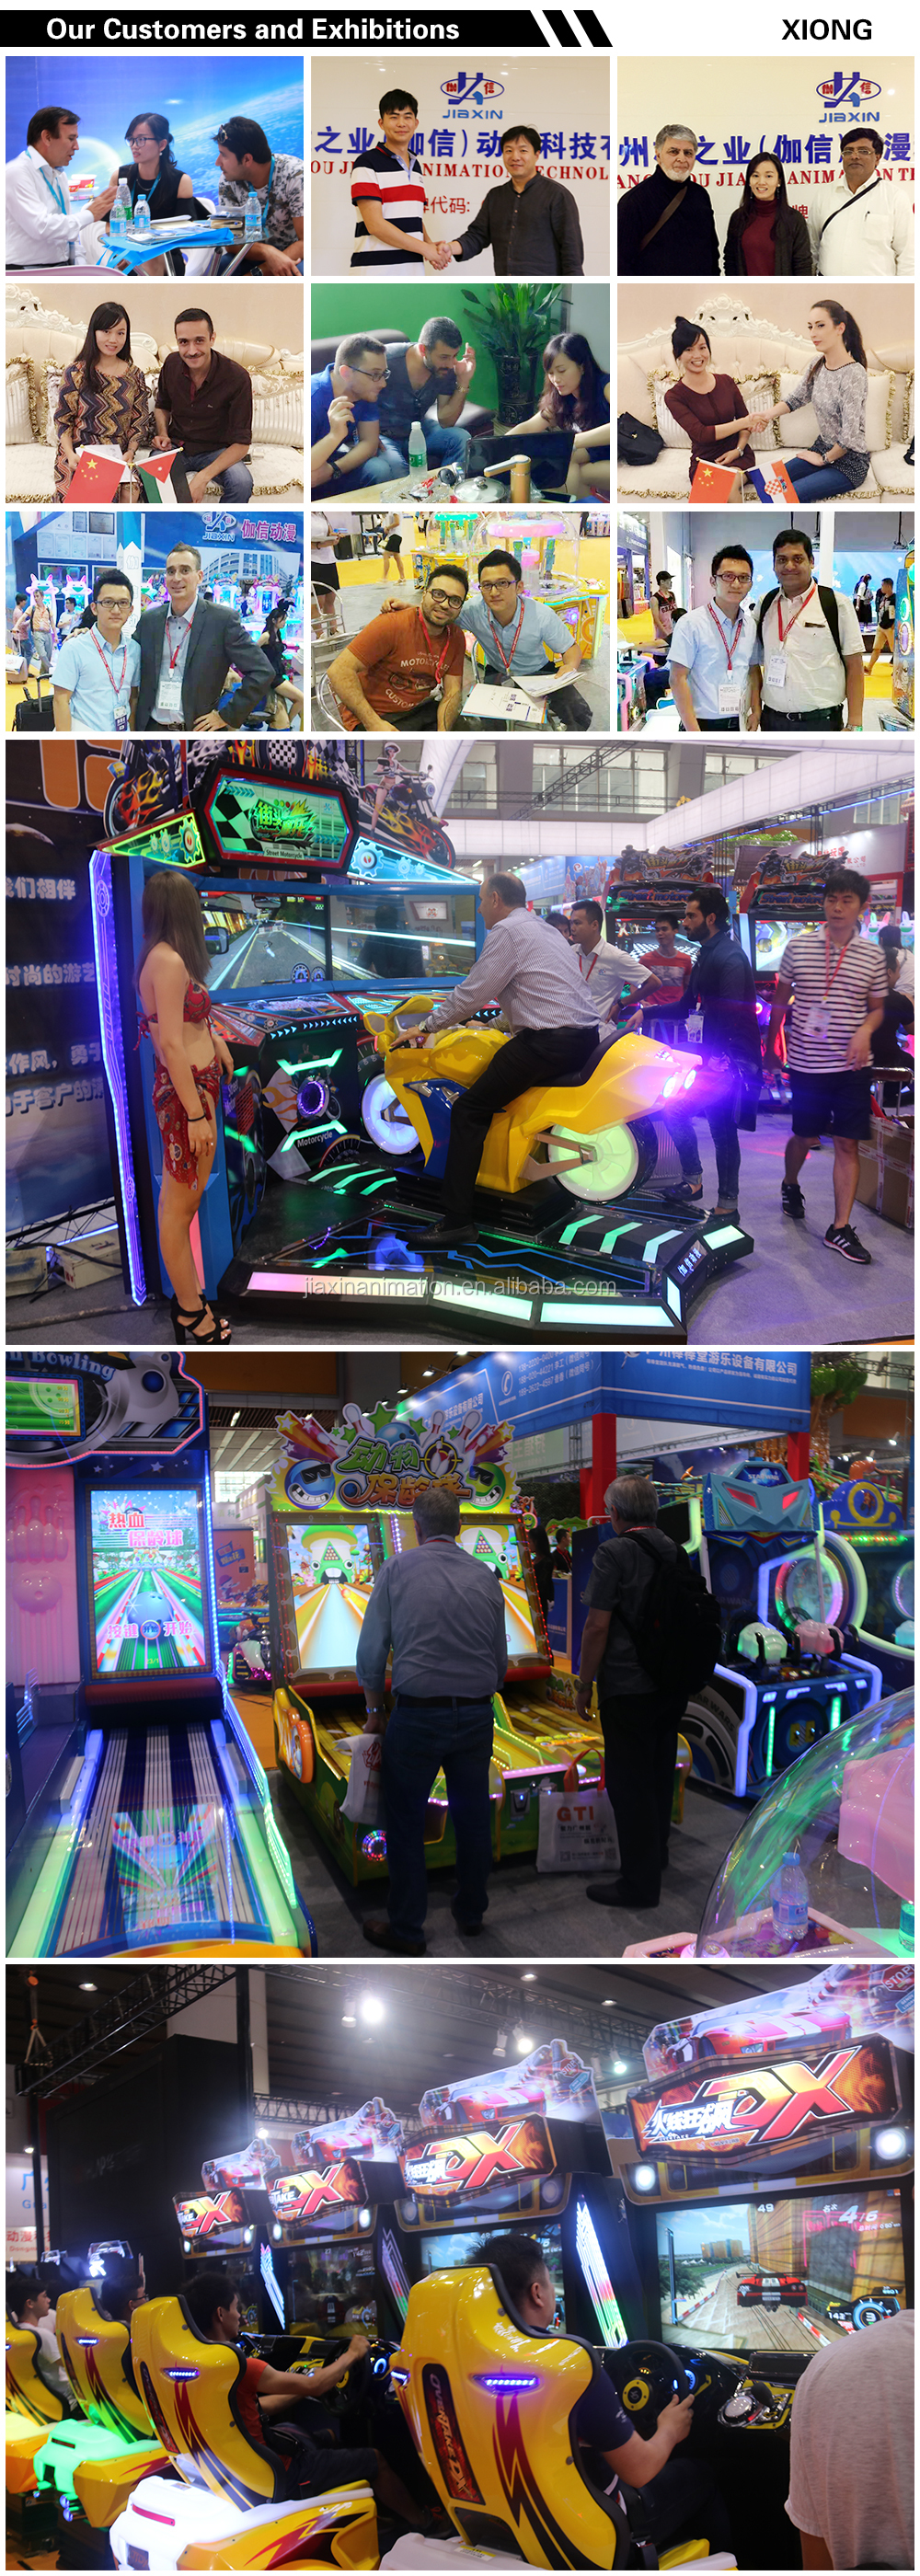 Jiaxin Hot Sale Coin Operated Video Arcade Game Machine For Kids